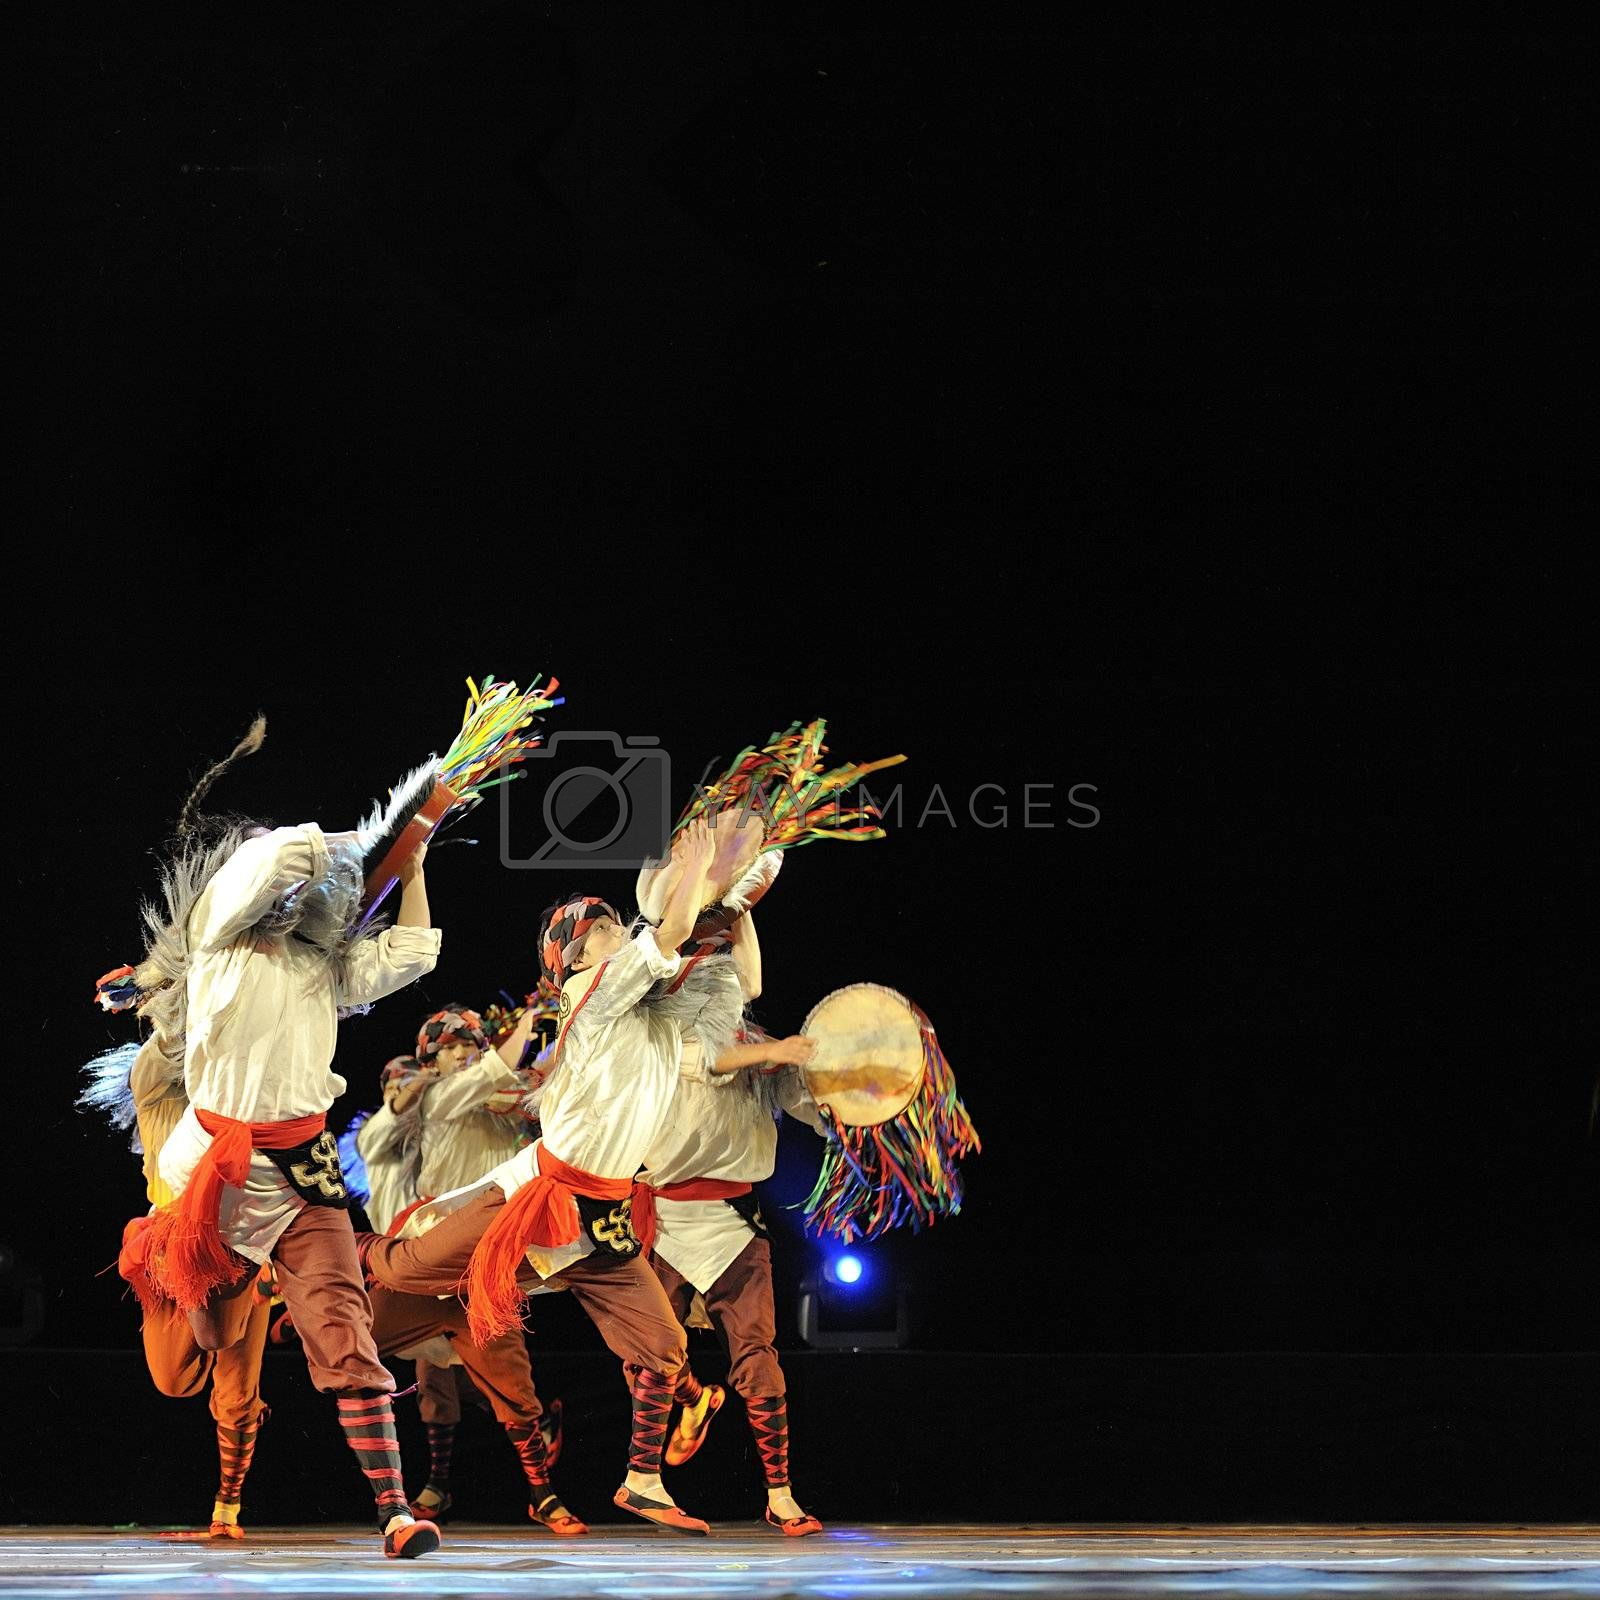 CHENGDU - SEP 28: chinese Qiang ethnic dancers perform on stage at Sichuan experimental theater.Sep 28,2010 in Chengdu, China.